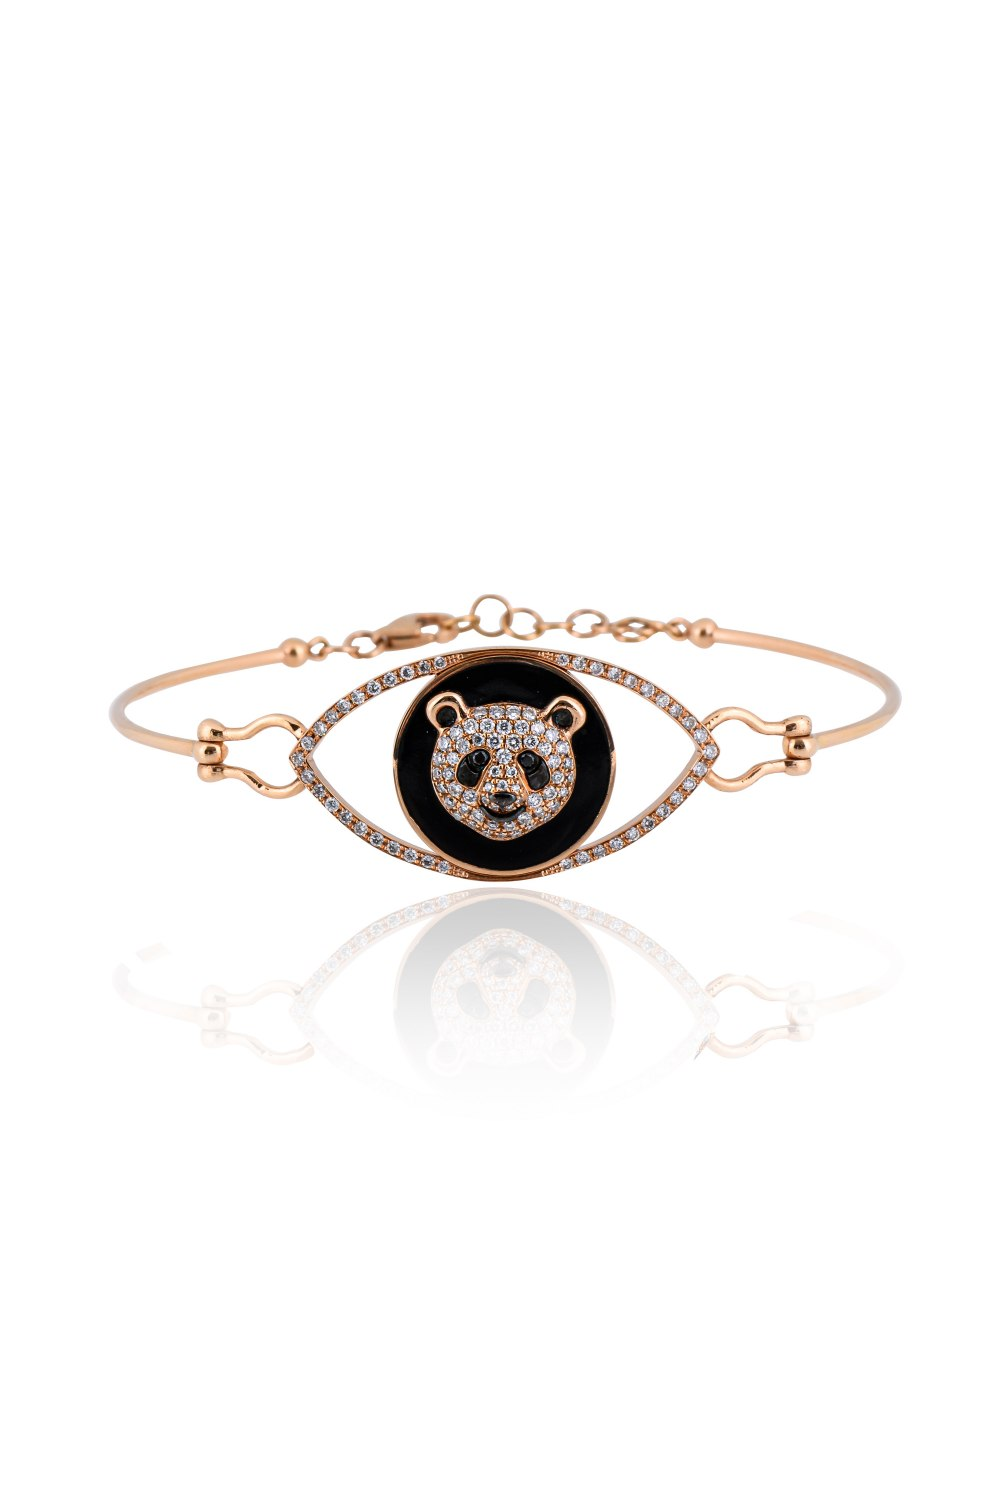 Kessaris-Panda Spirit Animal Diamond Bracelet